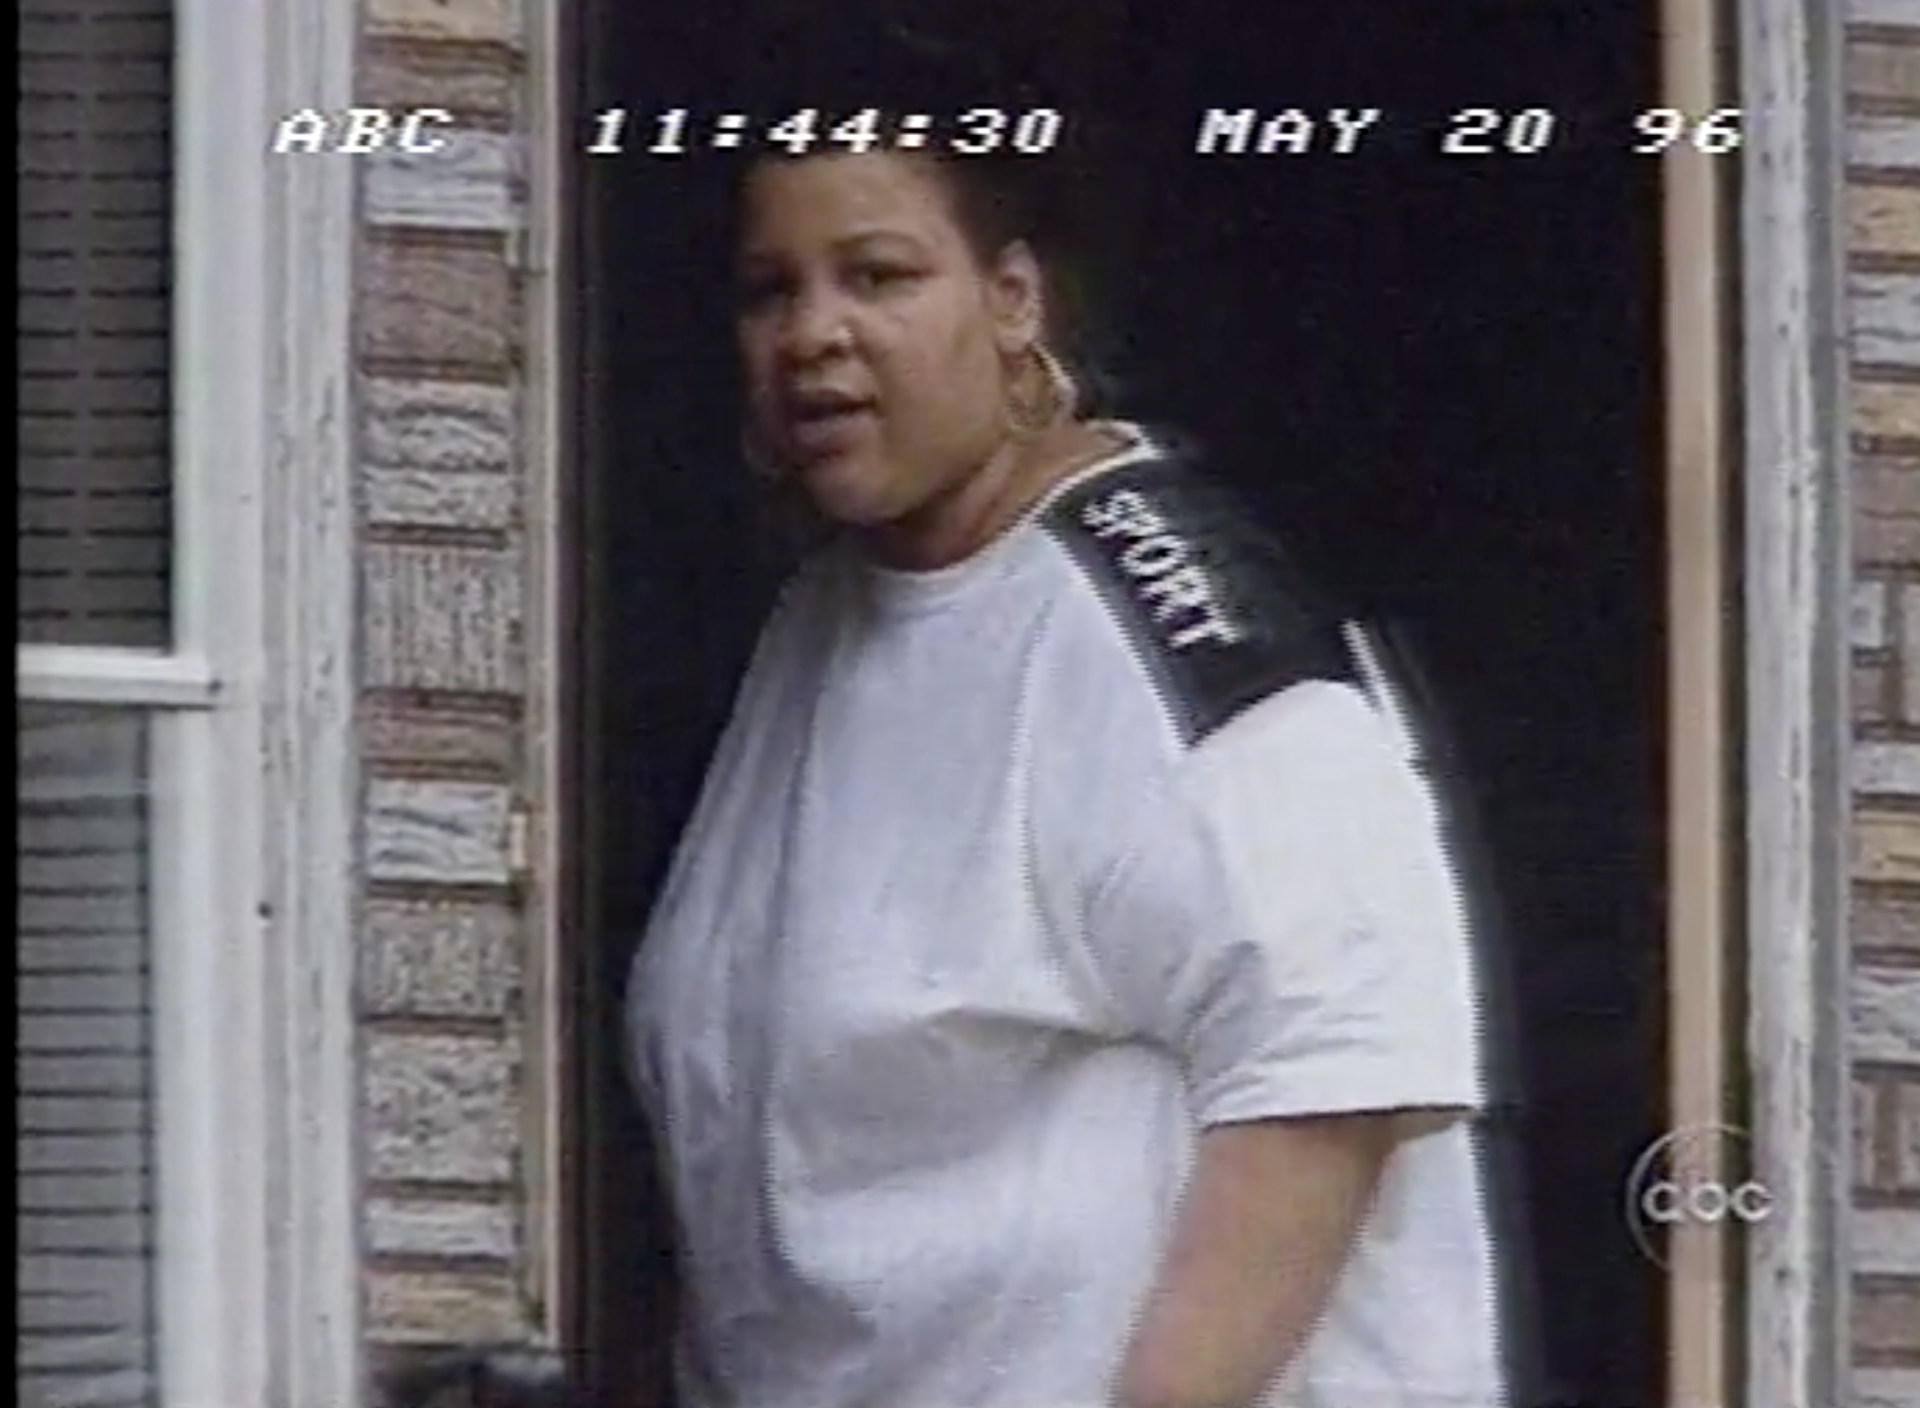 Bridget Ward, as shown in Nightline's feature on racism in Bridesburg in 1996.